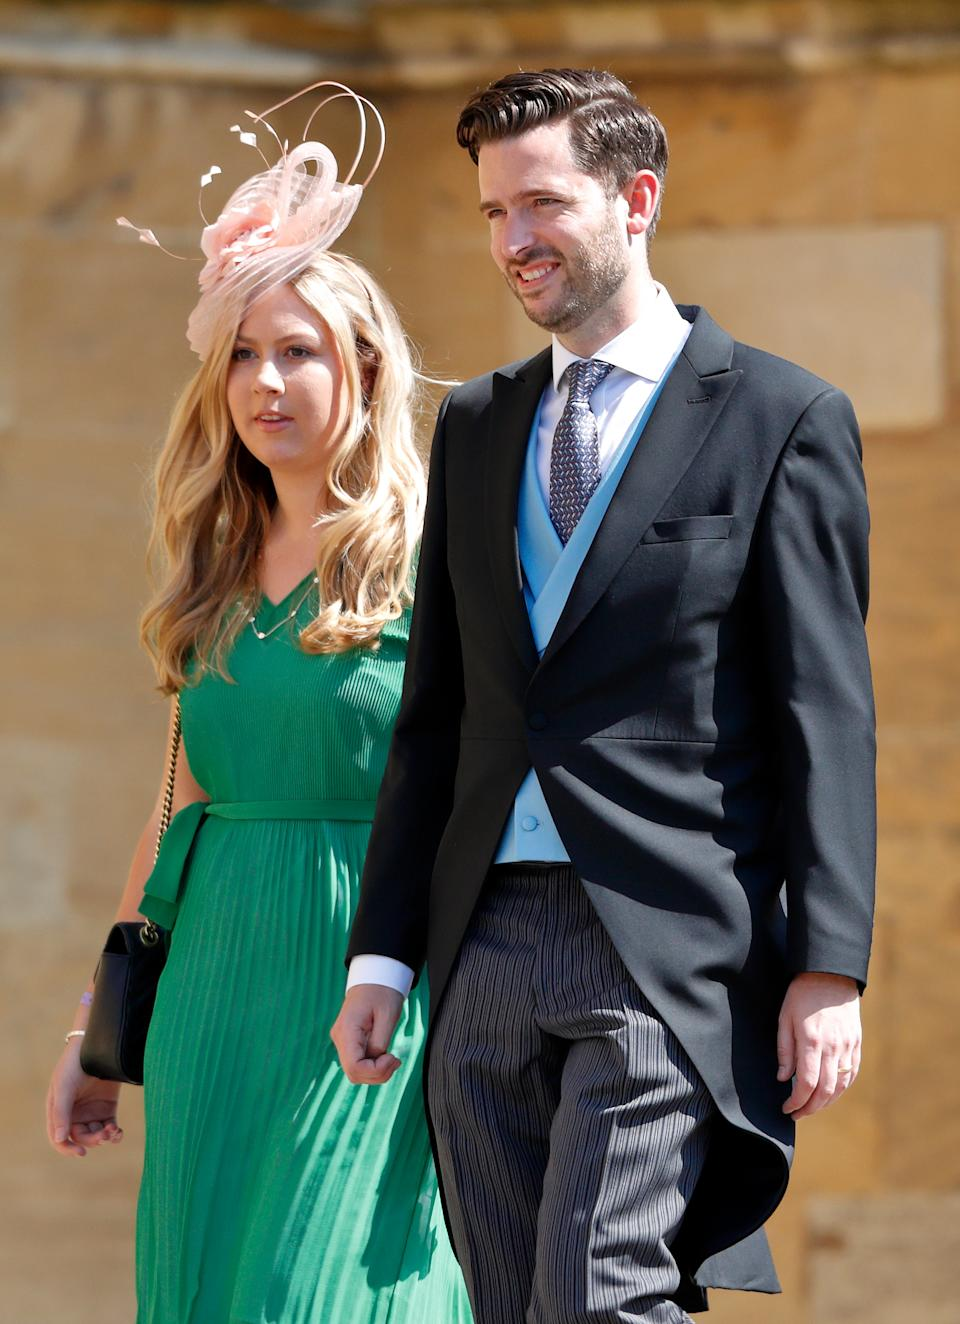 Jason Knauf, pictured here at Prince Harry and Meghan Markle's wedding. Photo: Getty